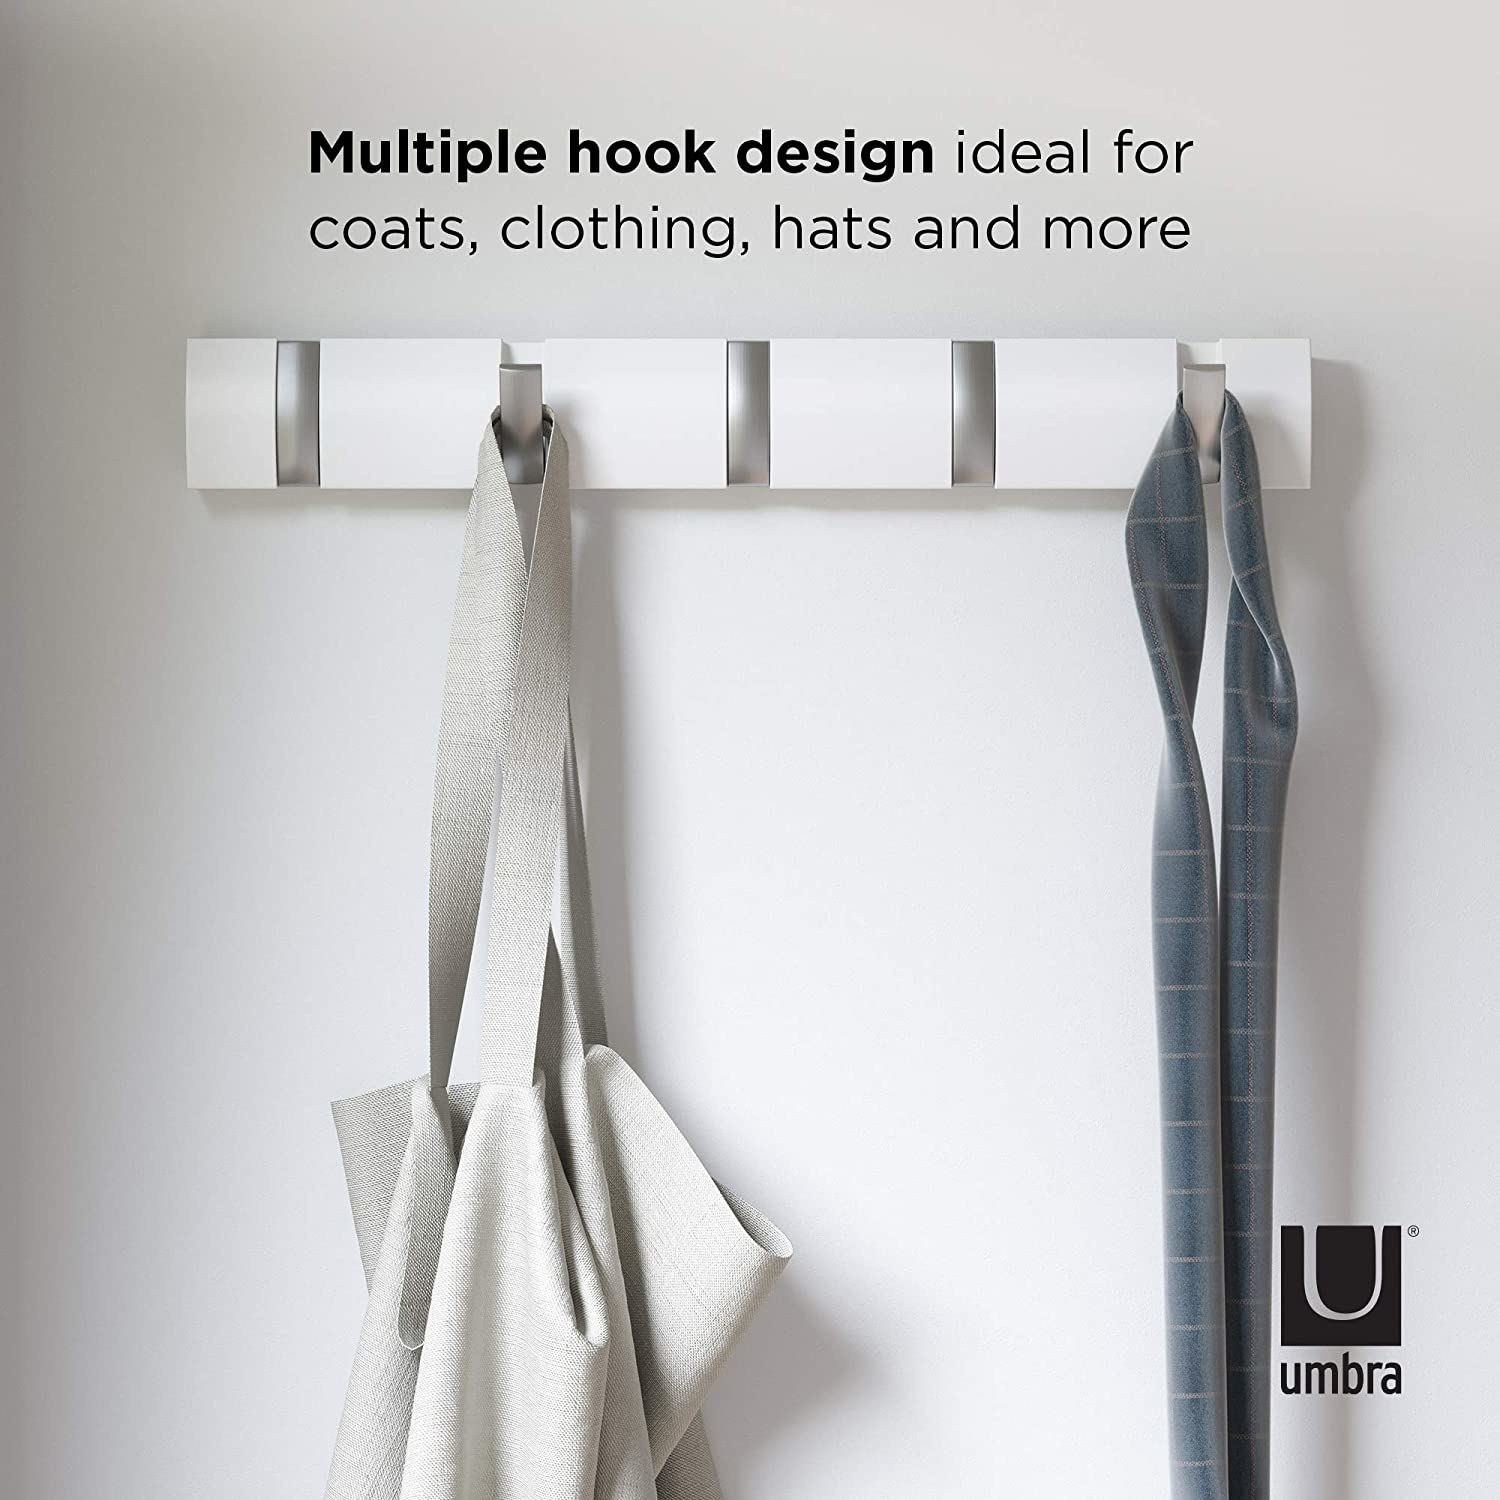 The five-hook shelf holding a bag and a scarf